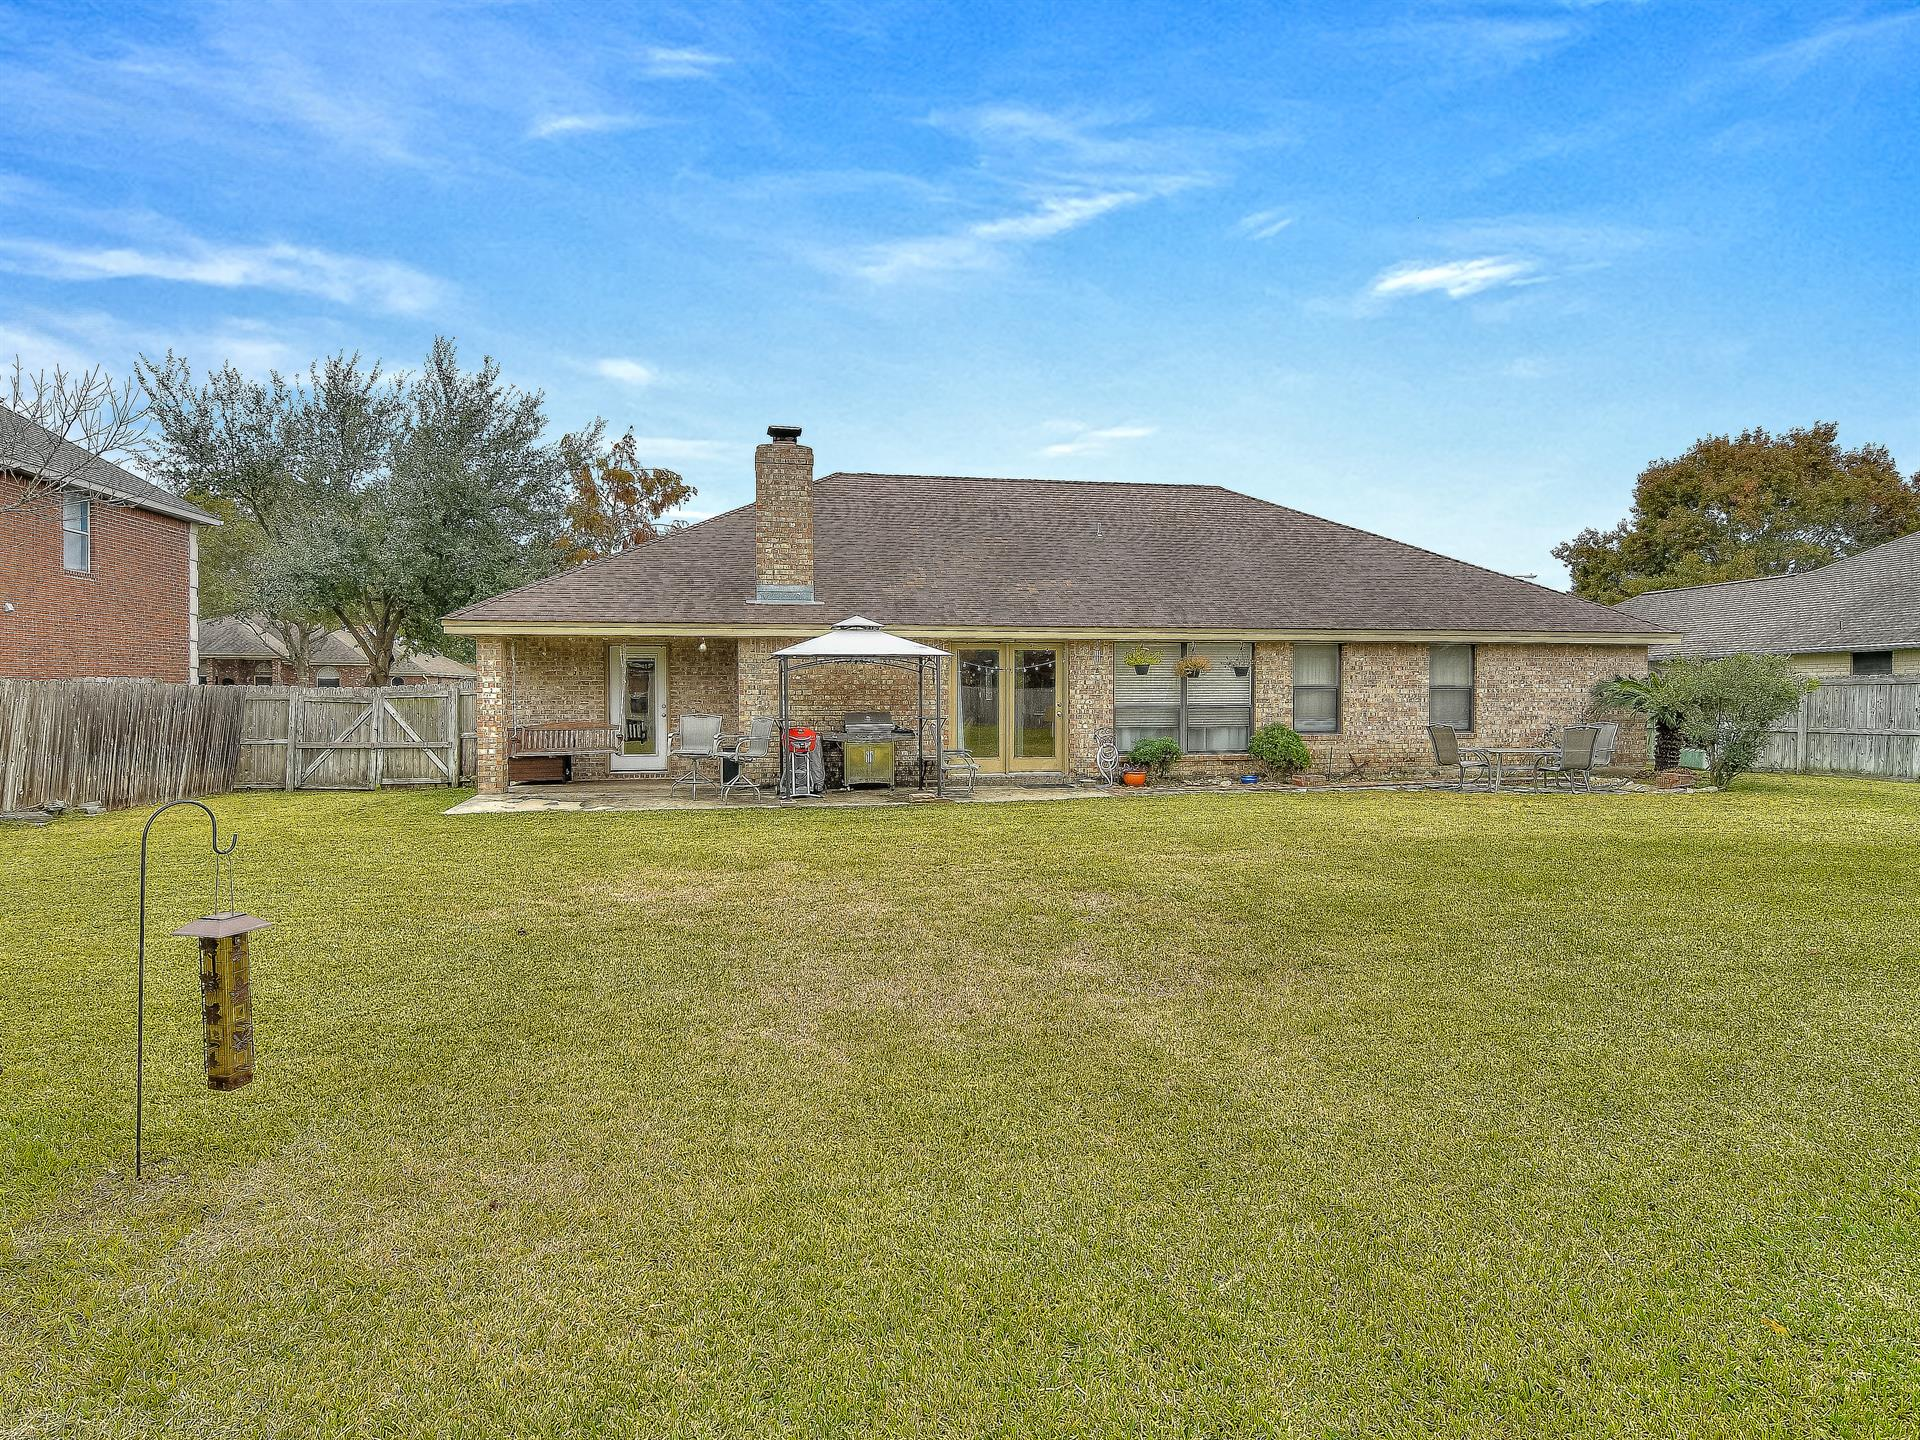 Additional photo for property listing at 846 Royal 846 Royal New Braunfels, Texas 78130 Estados Unidos